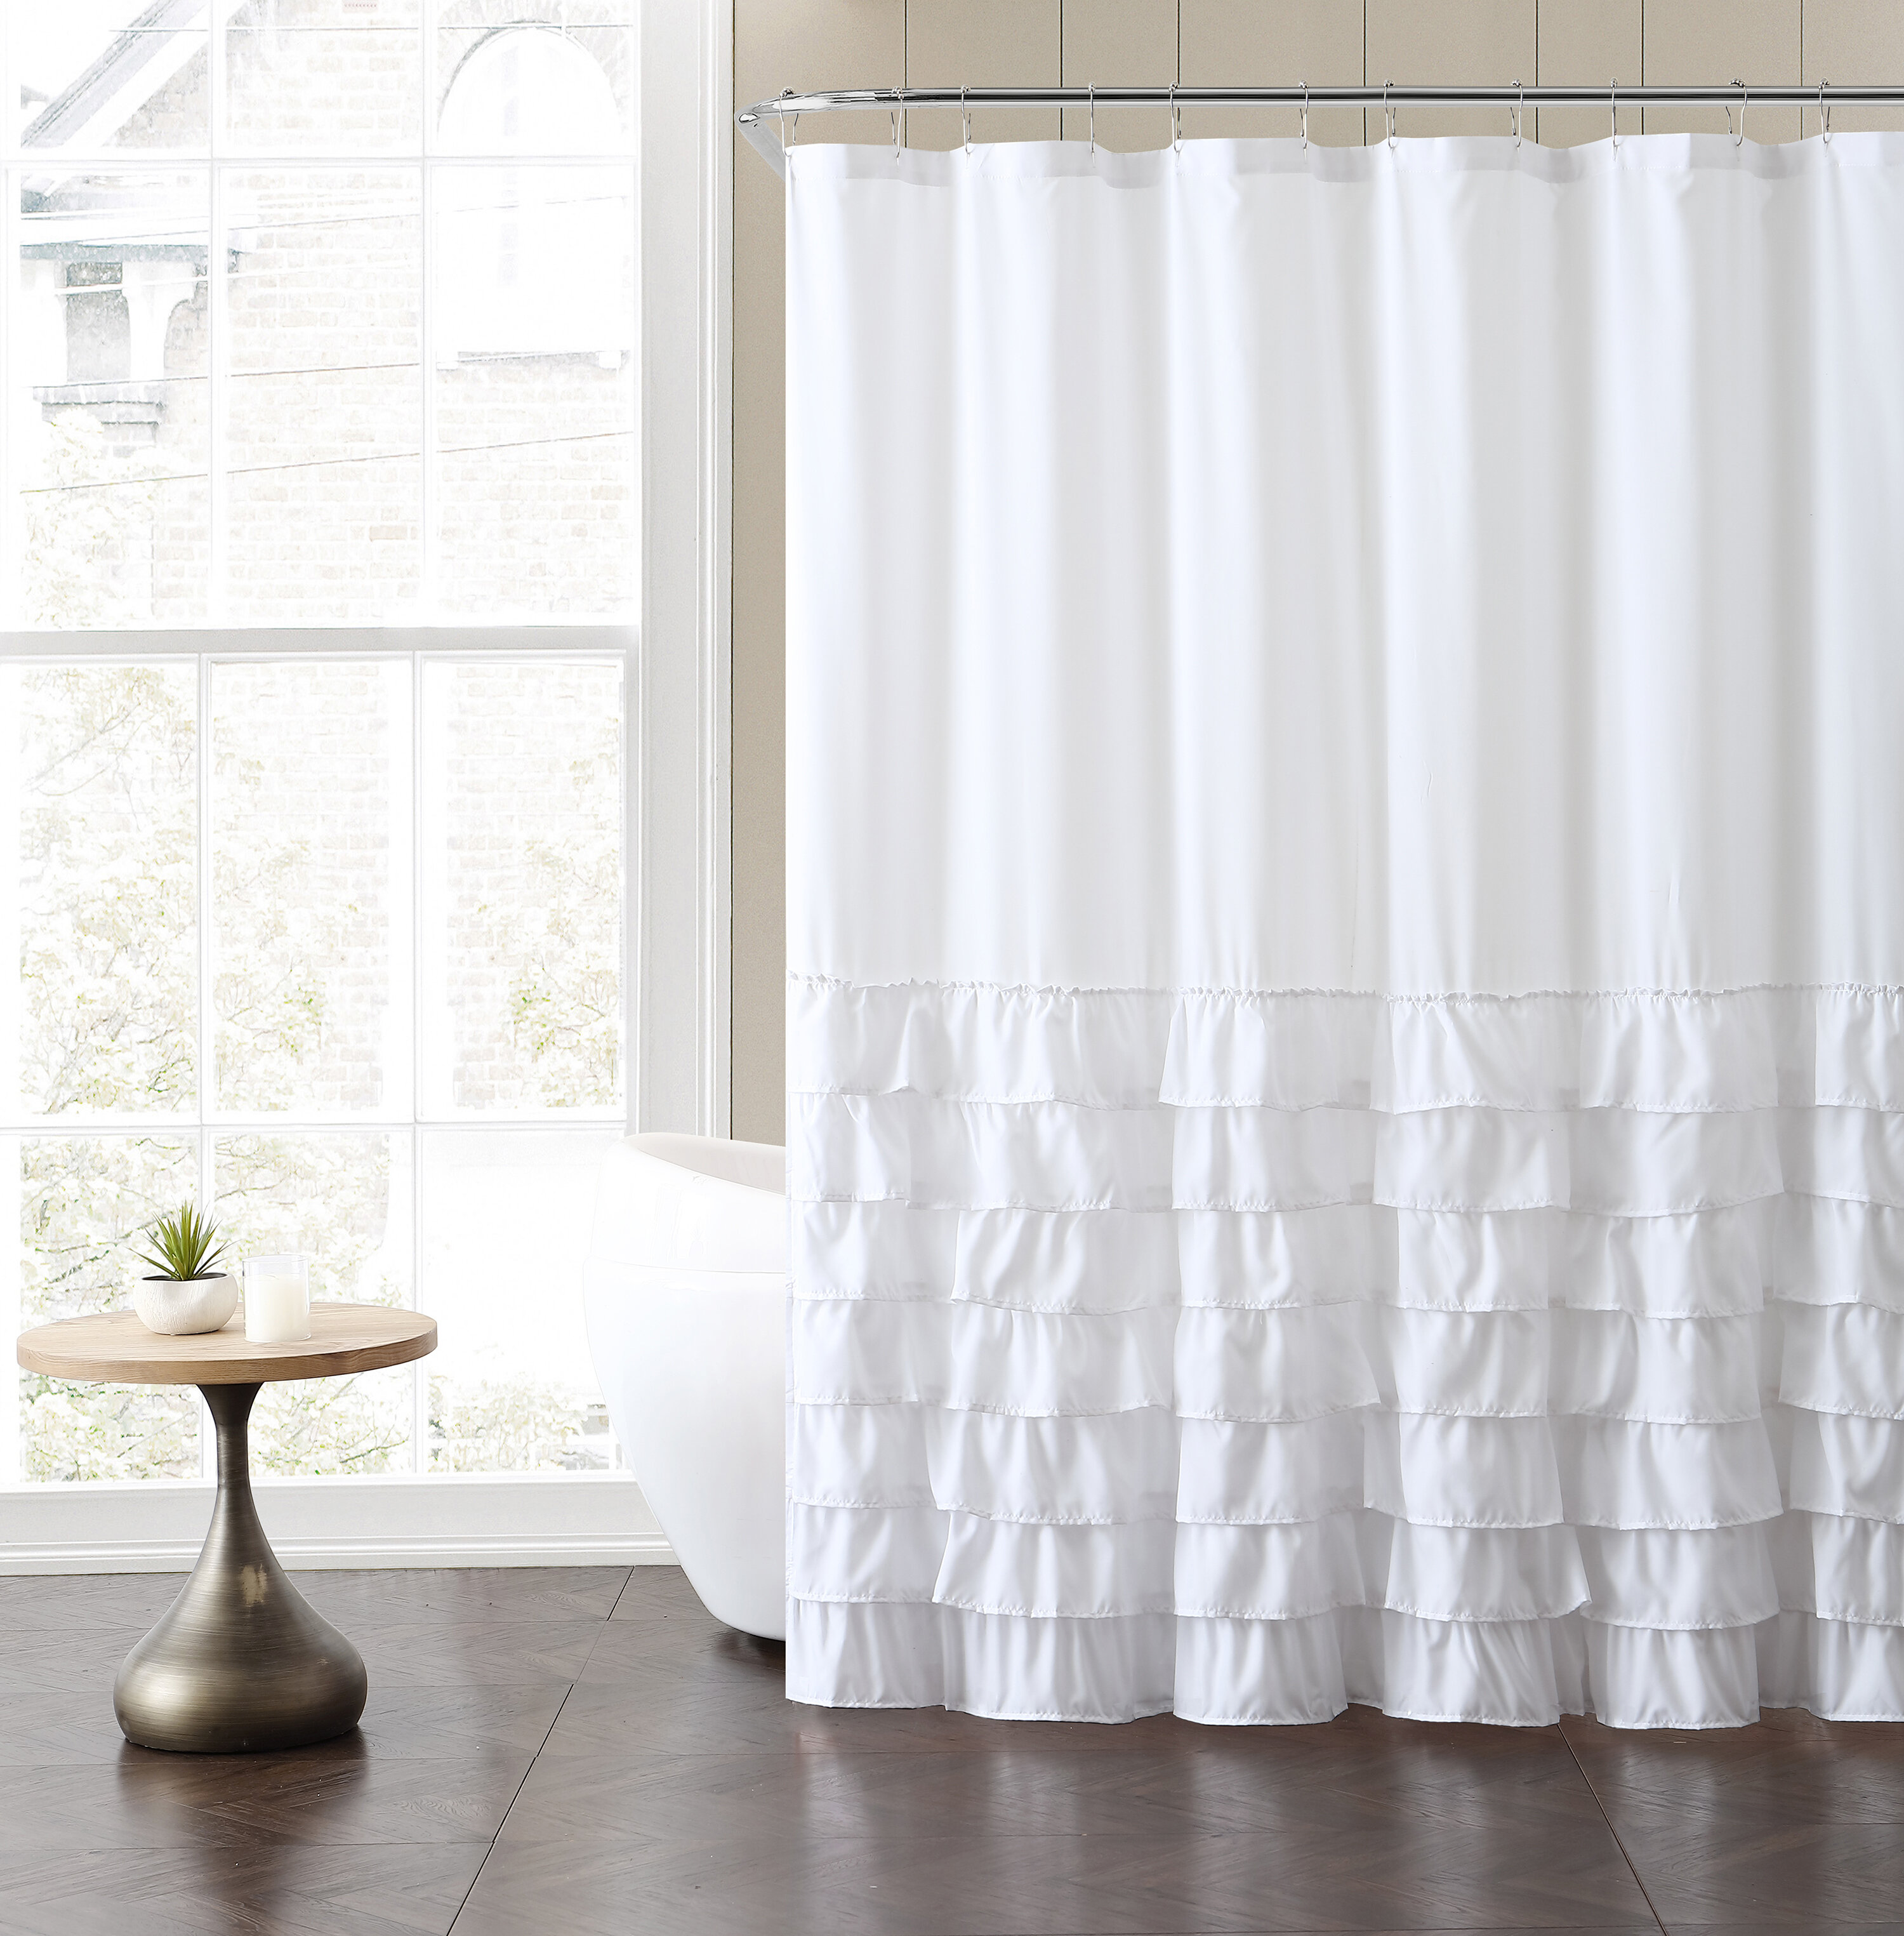 Ruffled White Shower Curtains Shower Liners You Ll Love In 2021 Wayfair